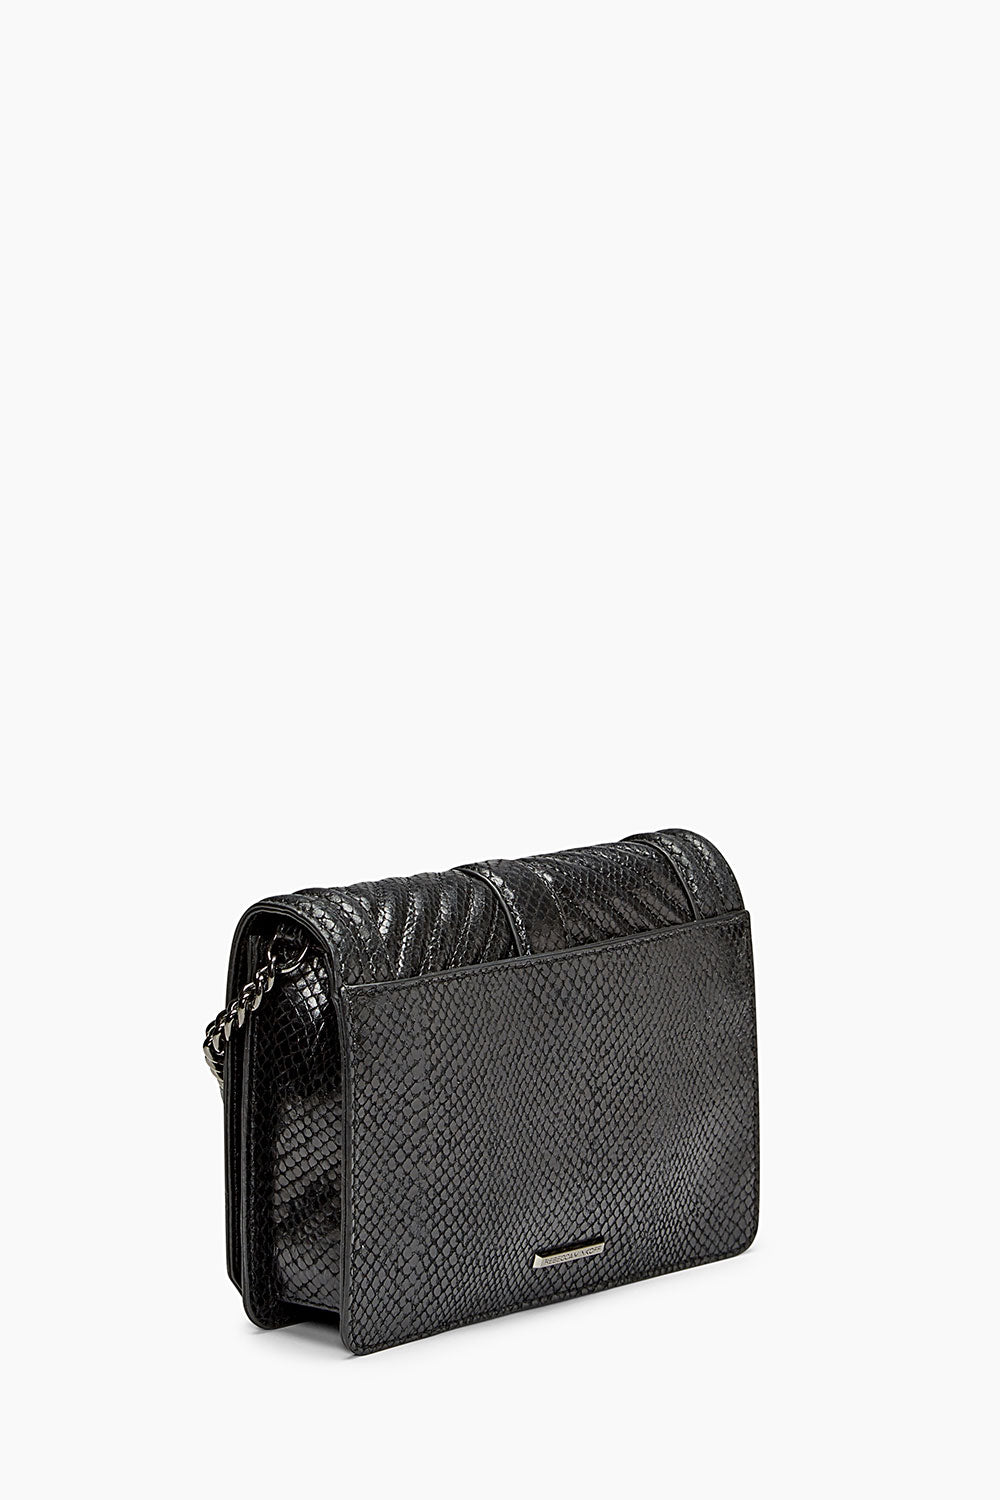 Small Love Crossbody